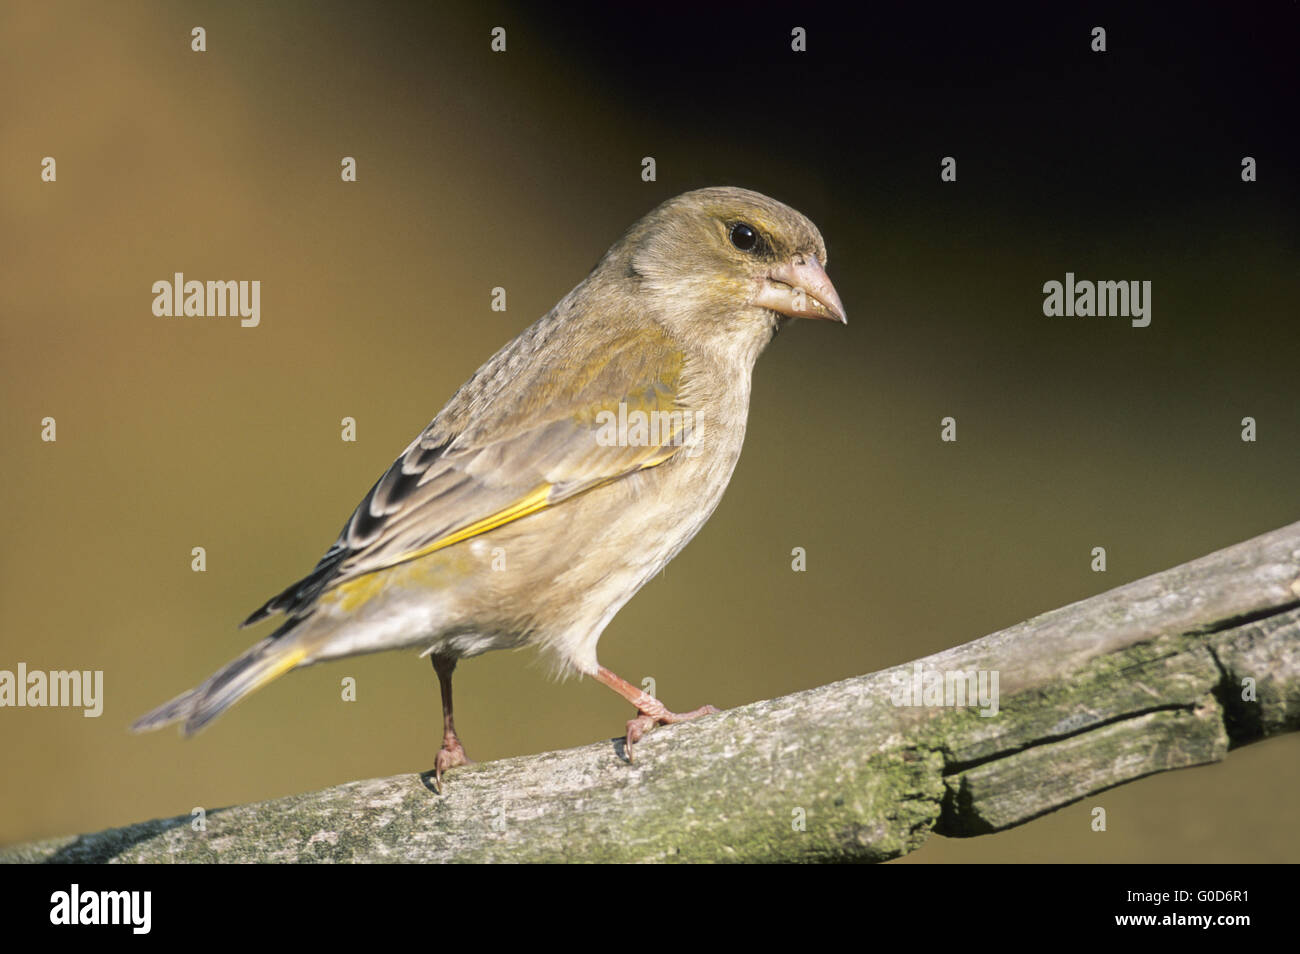 Greenfinch adult female sits on a branch - Stock Image